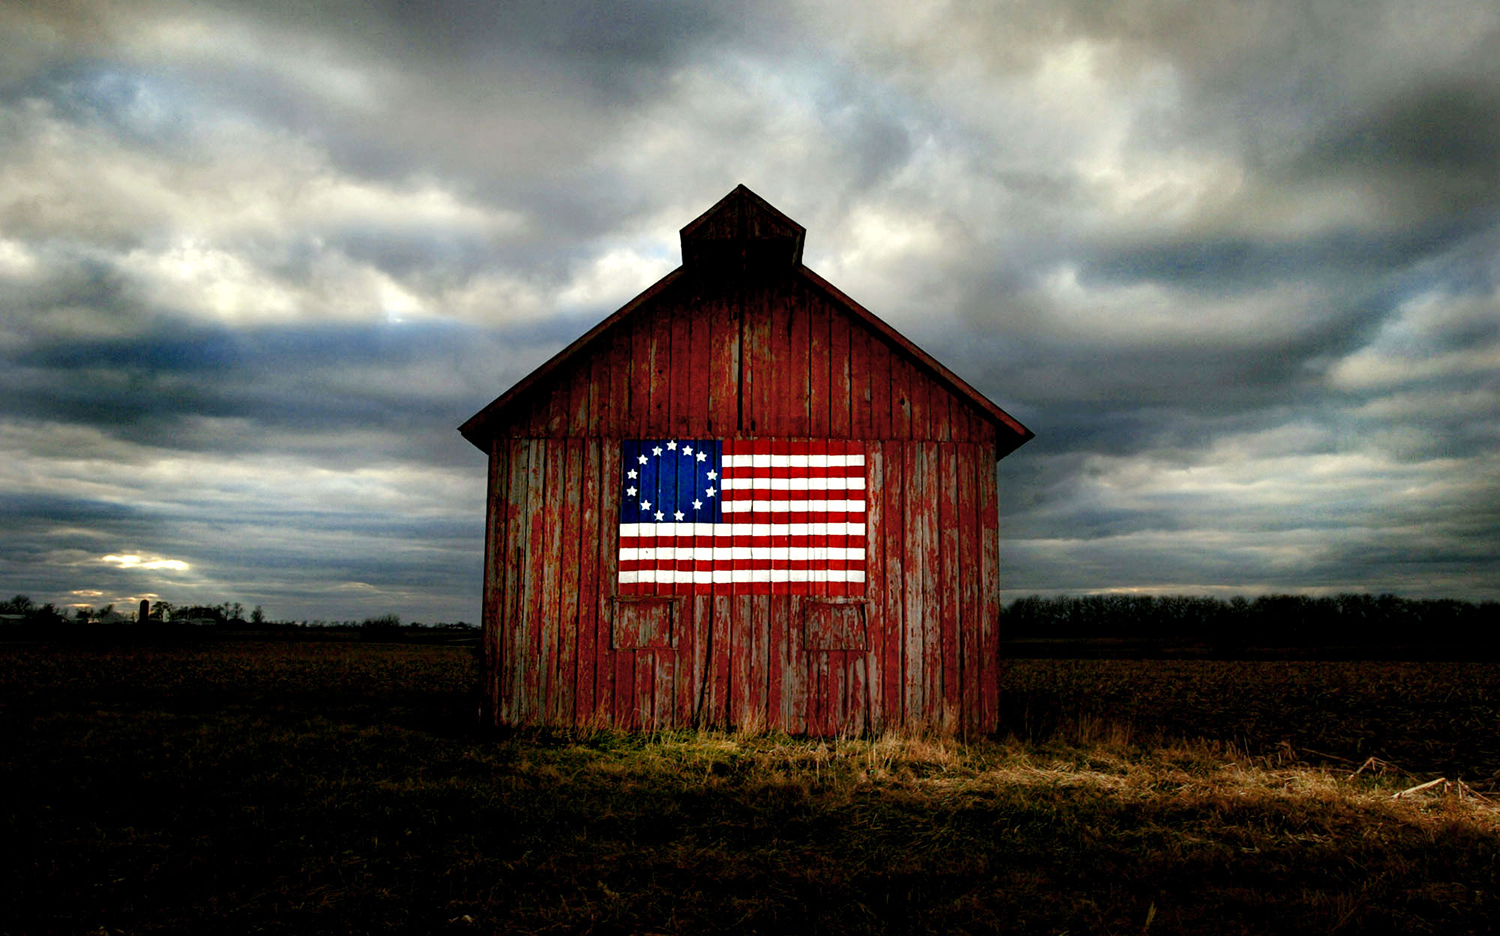 """The Wiese family barn stands braving storm clouds with a with a historic Besty Ross American Flag painted in rememberance of the September 11 attacks just north of Carlinville on Route 4. """"My son helped paint it to remember that day,"""" Gloria Wiese said. """"You wouldn't believe how many people stop and ask us about it."""" The Wiese family settlement dates back to 1853 in Macoupin County and the farm has been passed down through generations ever since.Pride on the prairie / The Wiese family barn, with a historic Betsy Ross American flag painted in remembrance of the Sept. 11 attacks, braves storm clouds Wednesday just north of Carlinville on Illinois 4. """"My son helped paint it to remember that day,"""" Gloria Wiese said. """"You wouldn't believe how many people stop and ask us about it."""" The Wiese family settlement dates to 1853 in Macoupin County, and the farm has been passed down through generations ever since."""